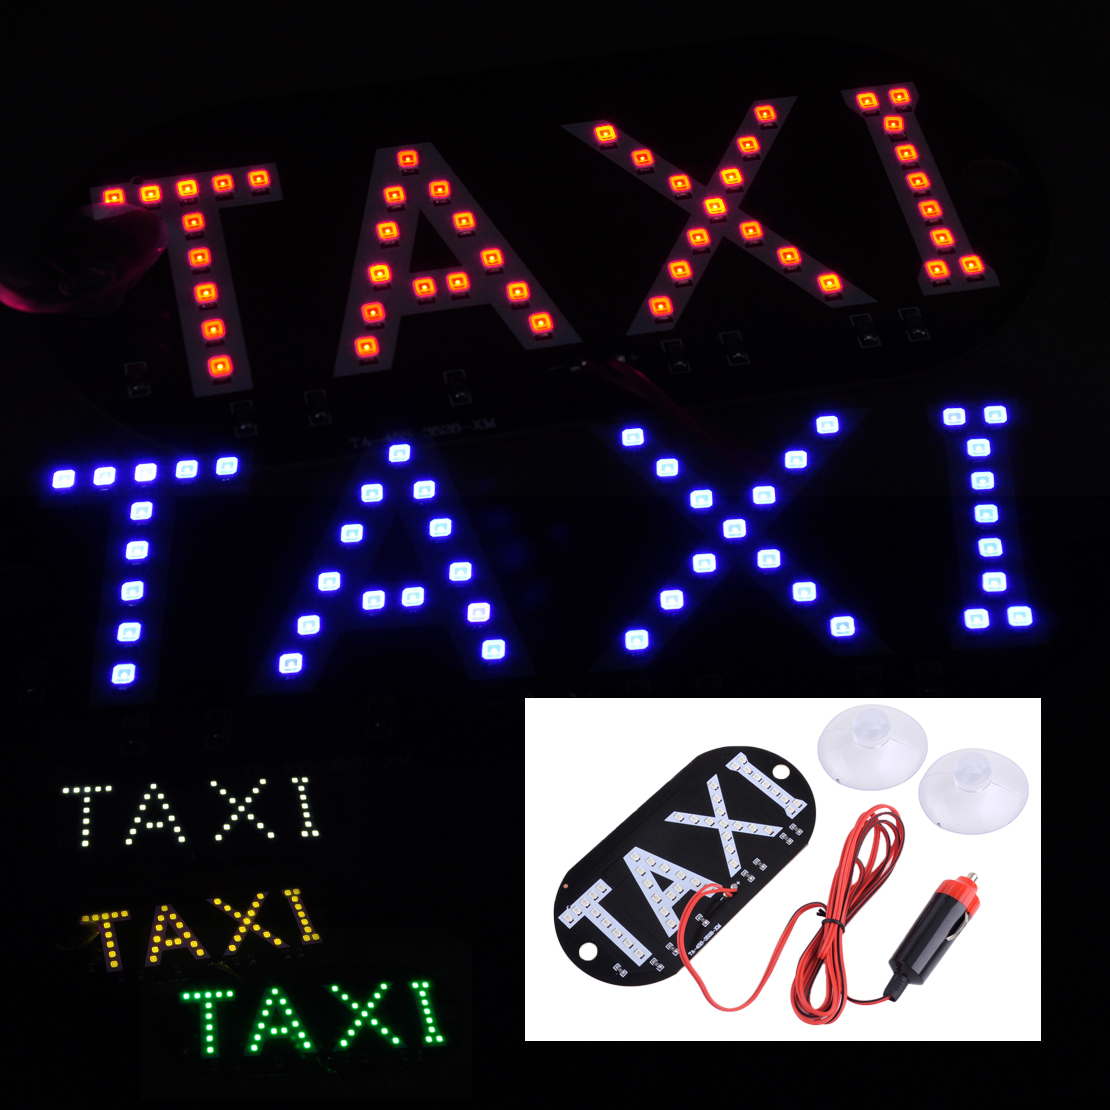 beler Auto Car 12V 45 LED Cab Roof Taxi Sign Light Vehicle Inside Windscreen Lamp Glass Fiber Board Car Accessories Decoration izztoss yellow taxi cab roof top sign light lamp magnetic large size car vehicle indicator lights